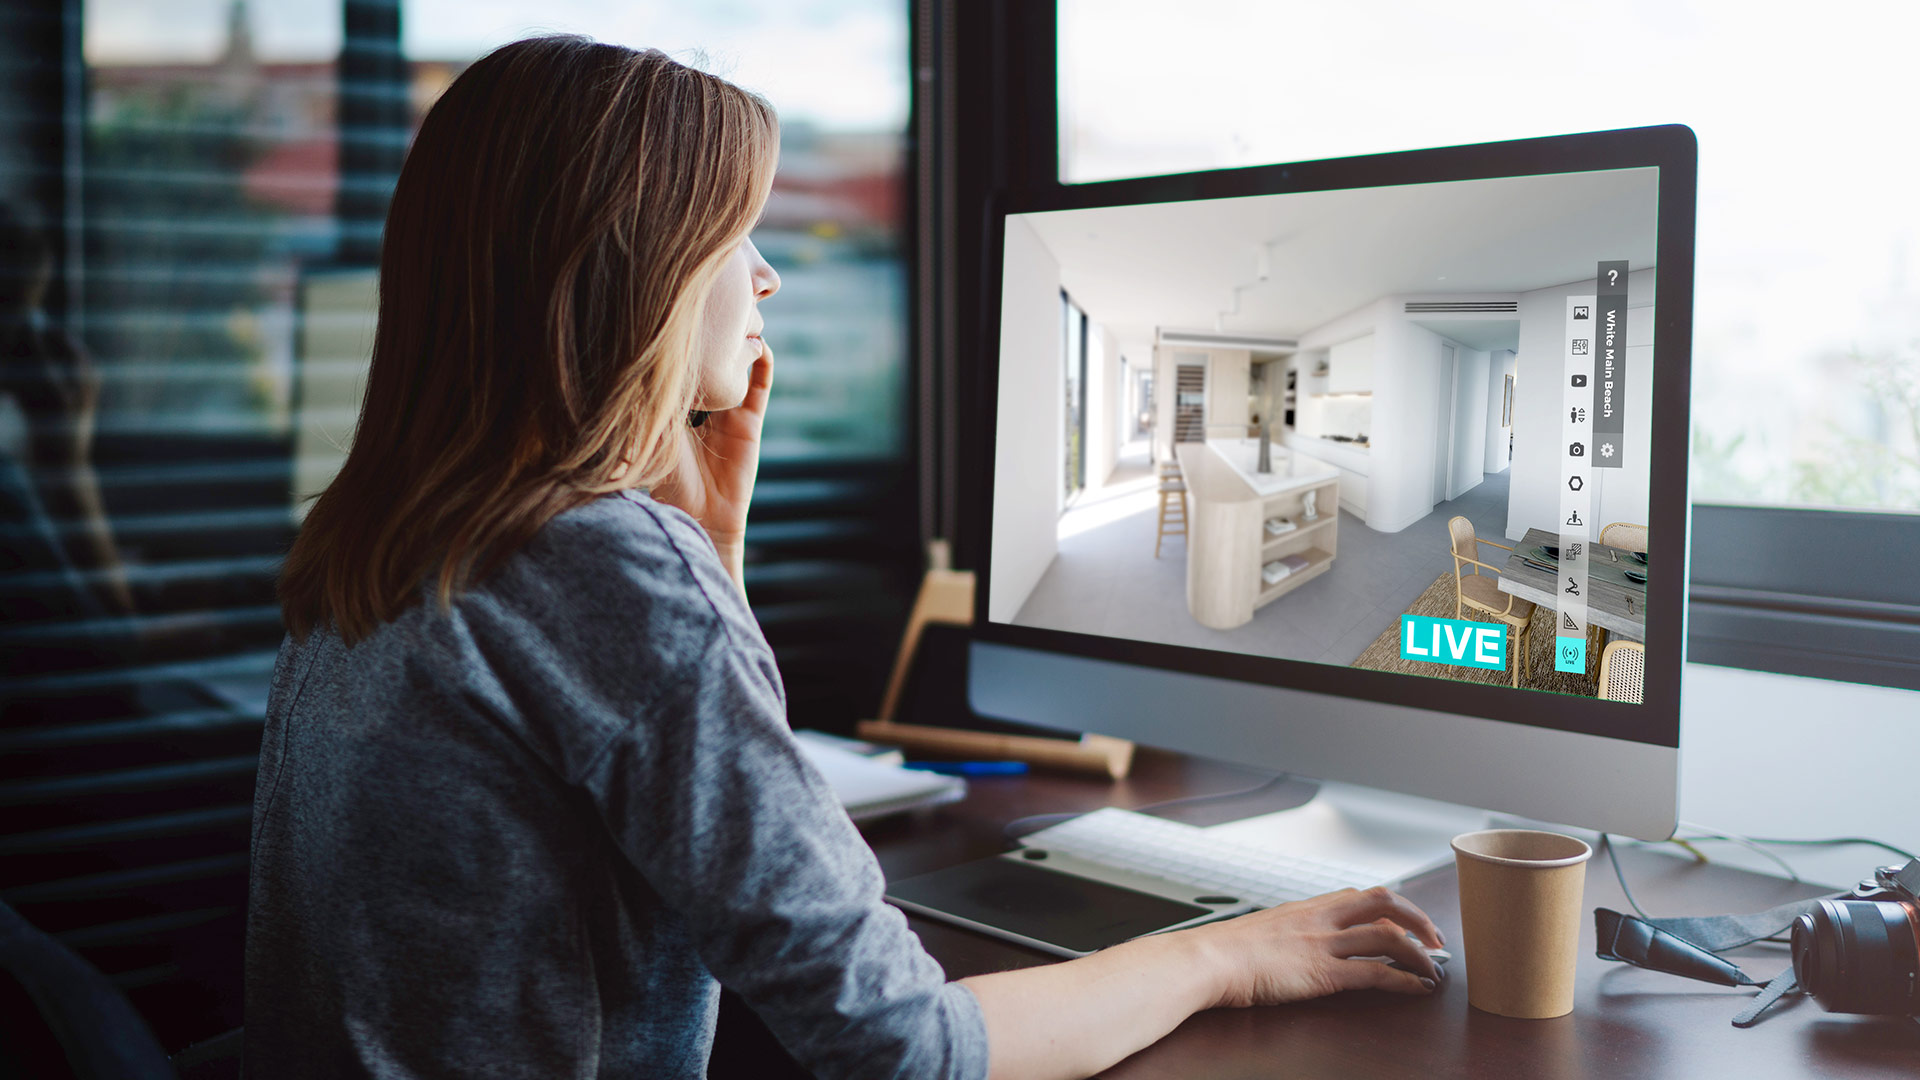 ▲ Realspace Live is a high-value, professional service that enables everyone in the decision process to conduct business from the comfort of their own home.